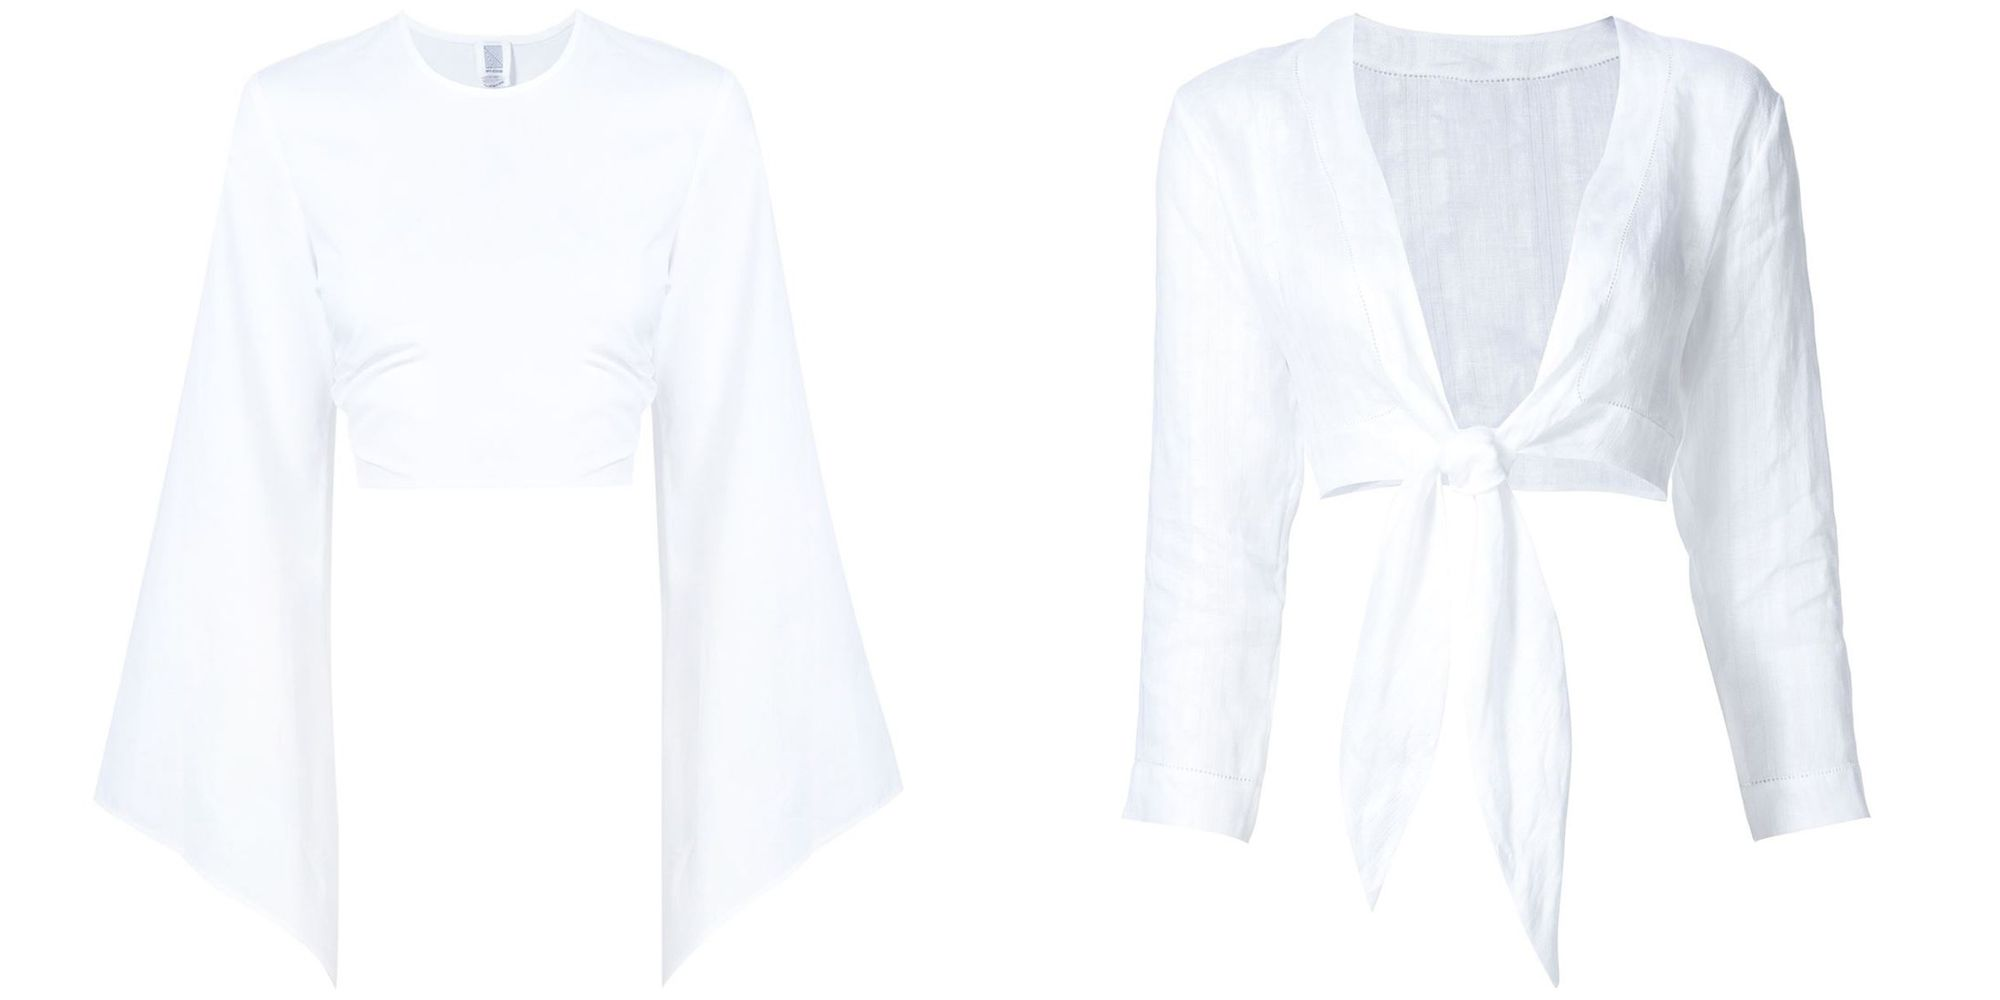 """<p>From bell-sleeve to tie-waist, the white crop top is your anything-but-basic summer basic. </p><p><em><br></em></p><p><em><strong>Rosie Assoulin</strong> top, $795, <strong><a href=""""https://shop.harpersbazaar.com/designers/r/rosie-assoulin/poplin-bell-top-9161.html"""" target=""""_blank"""">shopBAZAAR.com</a></strong>; <strong>Lisa Marie Fernandez </strong>blouse, $415, <strong><a href=""""https://shop.harpersbazaar.com/designers/l/lisa-marie-fernandez/tie-voile-blouse-9156.html"""" target=""""_blank"""">shopBAZAAR.com</a></strong></em><em>.</em><br></p>"""